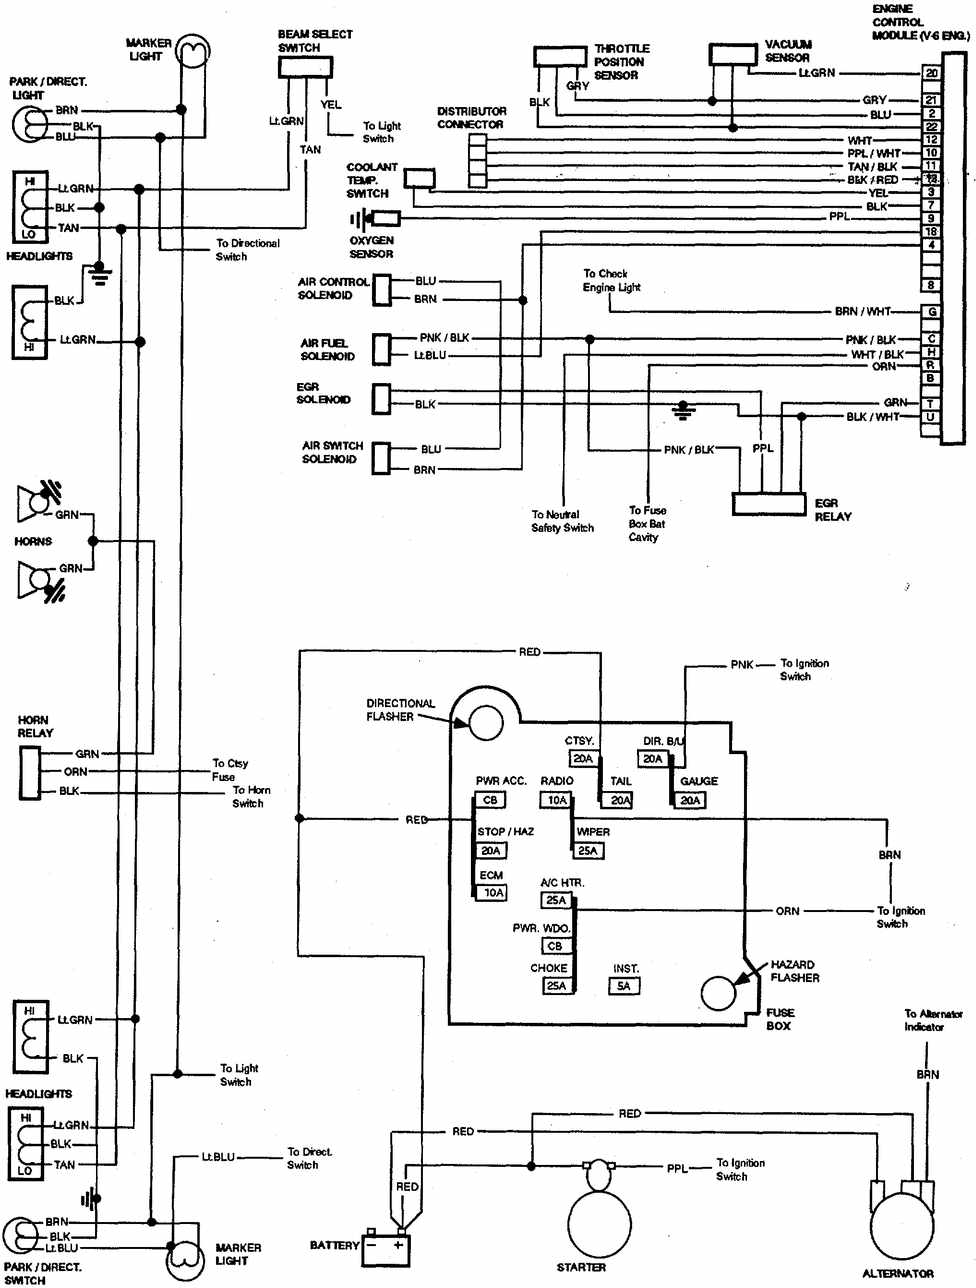 80 Gm Alternator Wiring Diagram Auto Electrical Genesis House Chevrolet V8 Trucks 1981